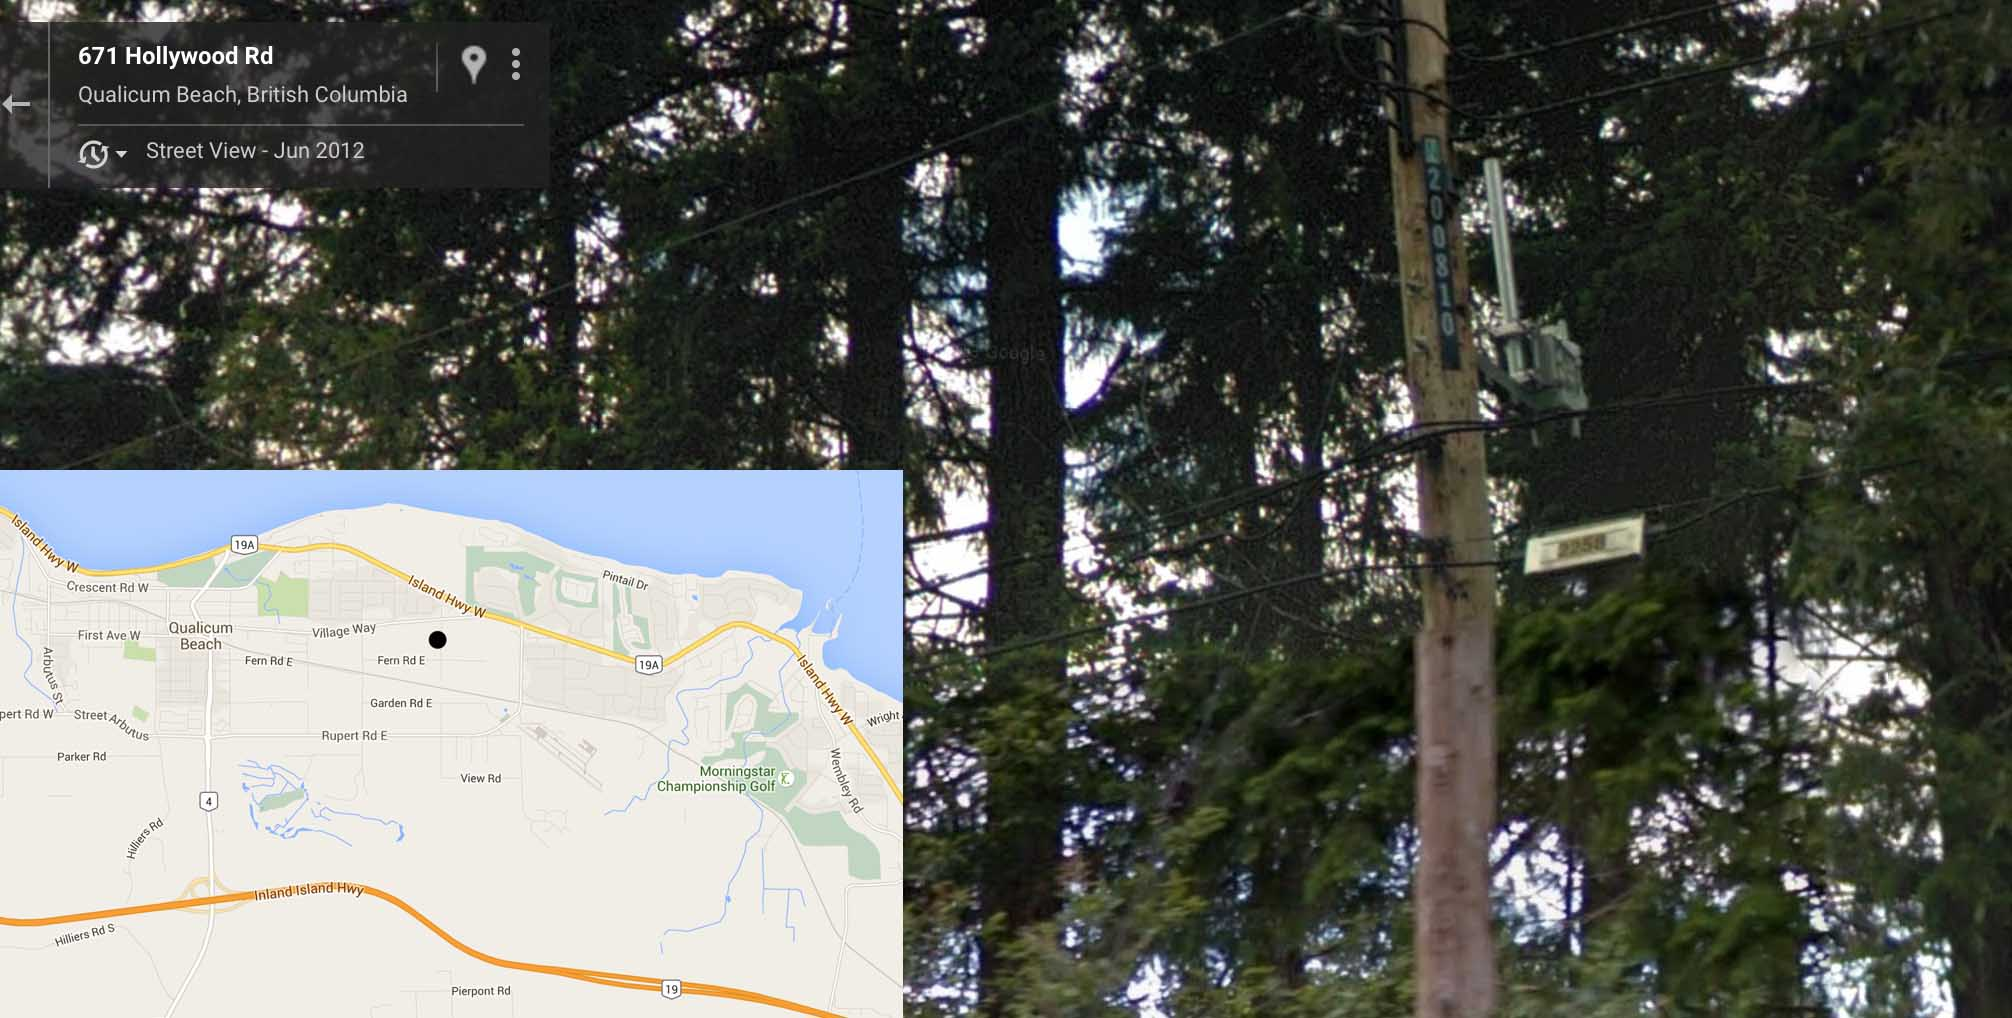 Hollywood Road - Qualicum Beach, BC  - BC Hydro Itron Cisco Collector Router